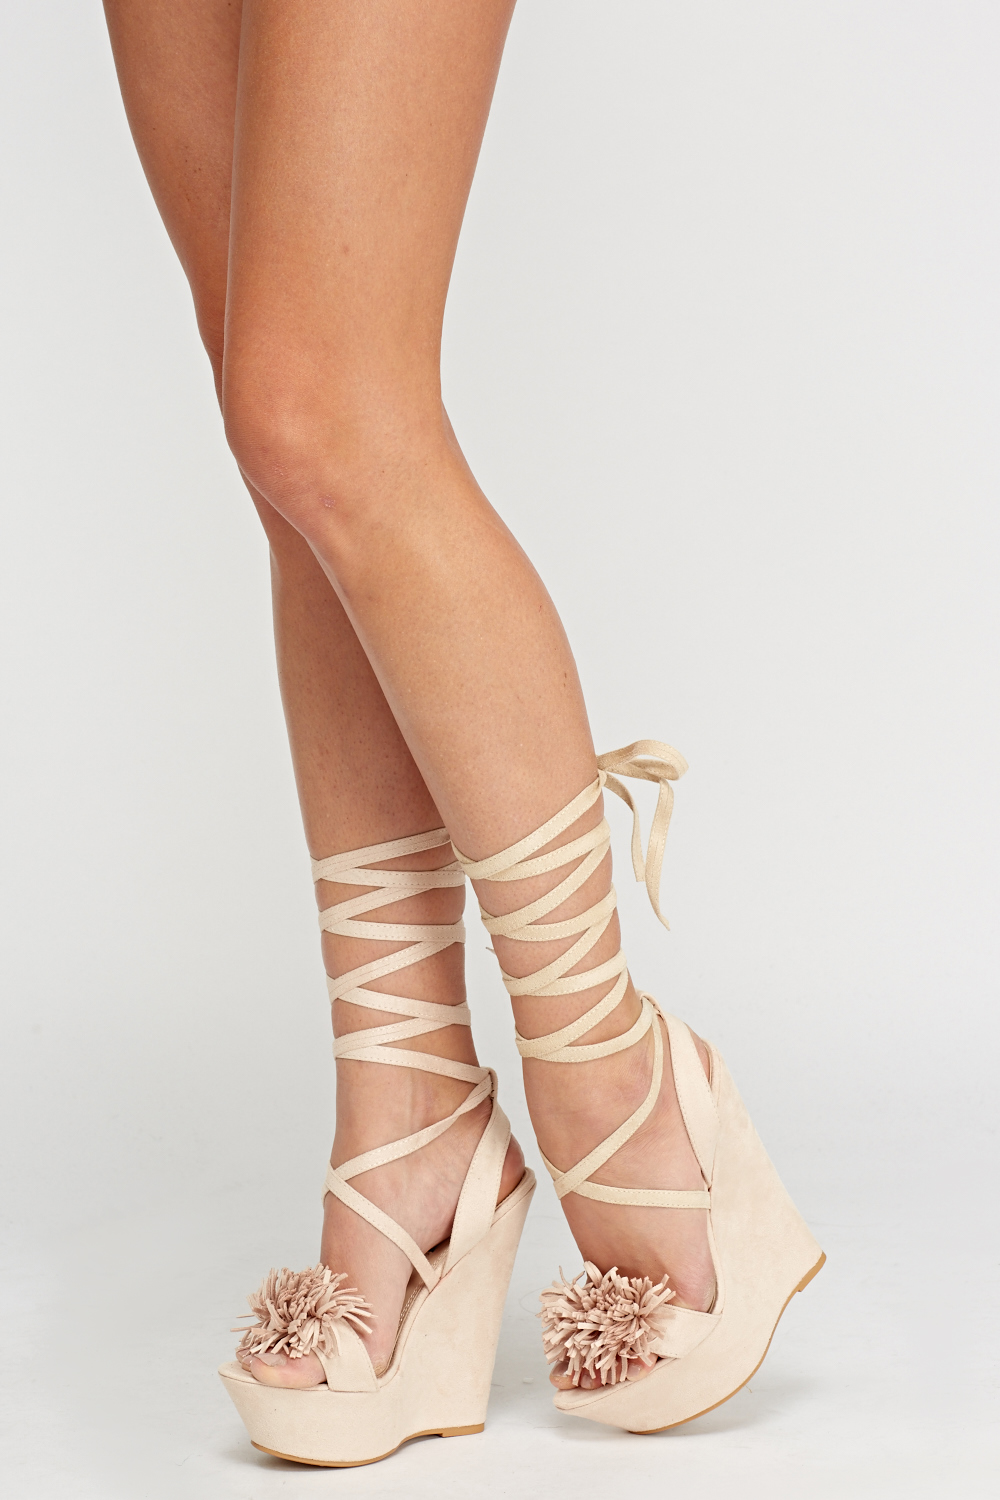 d89eb3b5d905ae Velveteen Lace Up Wedge Sandals - Just £5